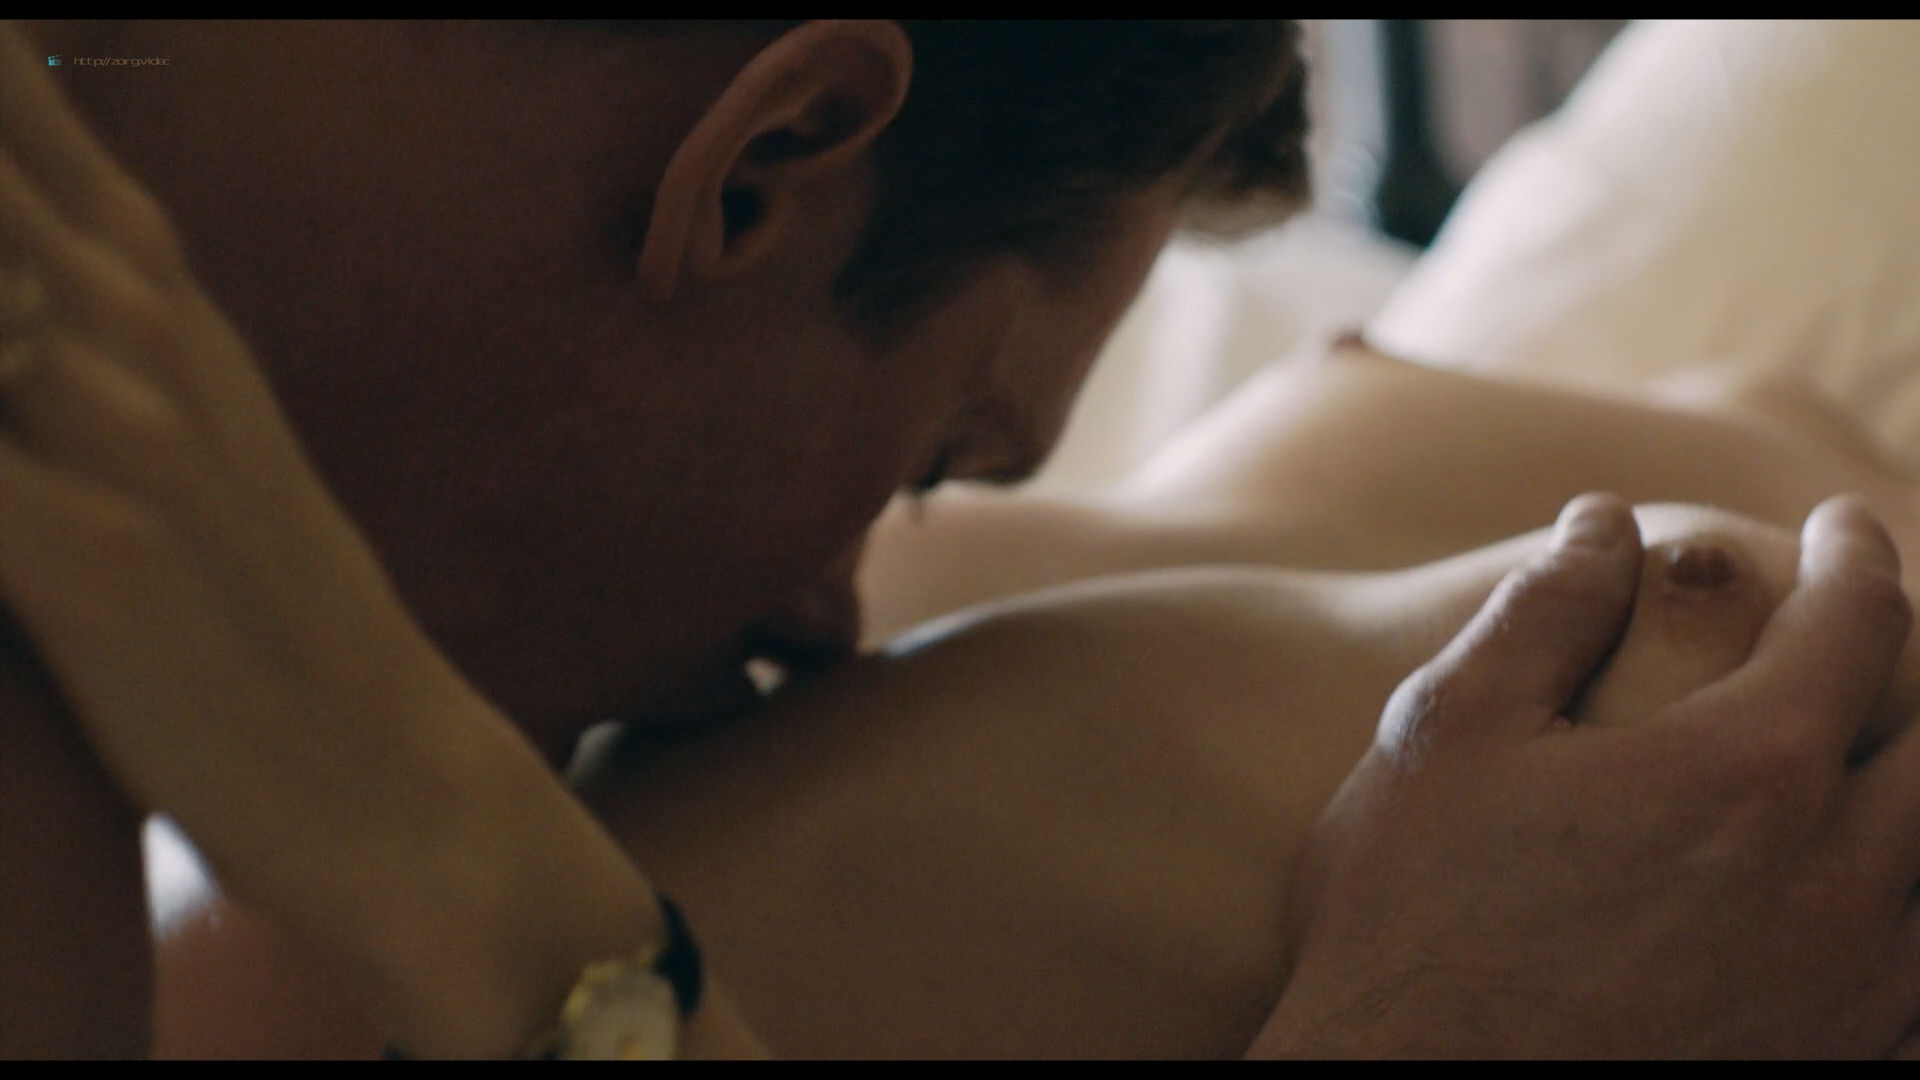 keira-knightley-sex-scene-metacafe